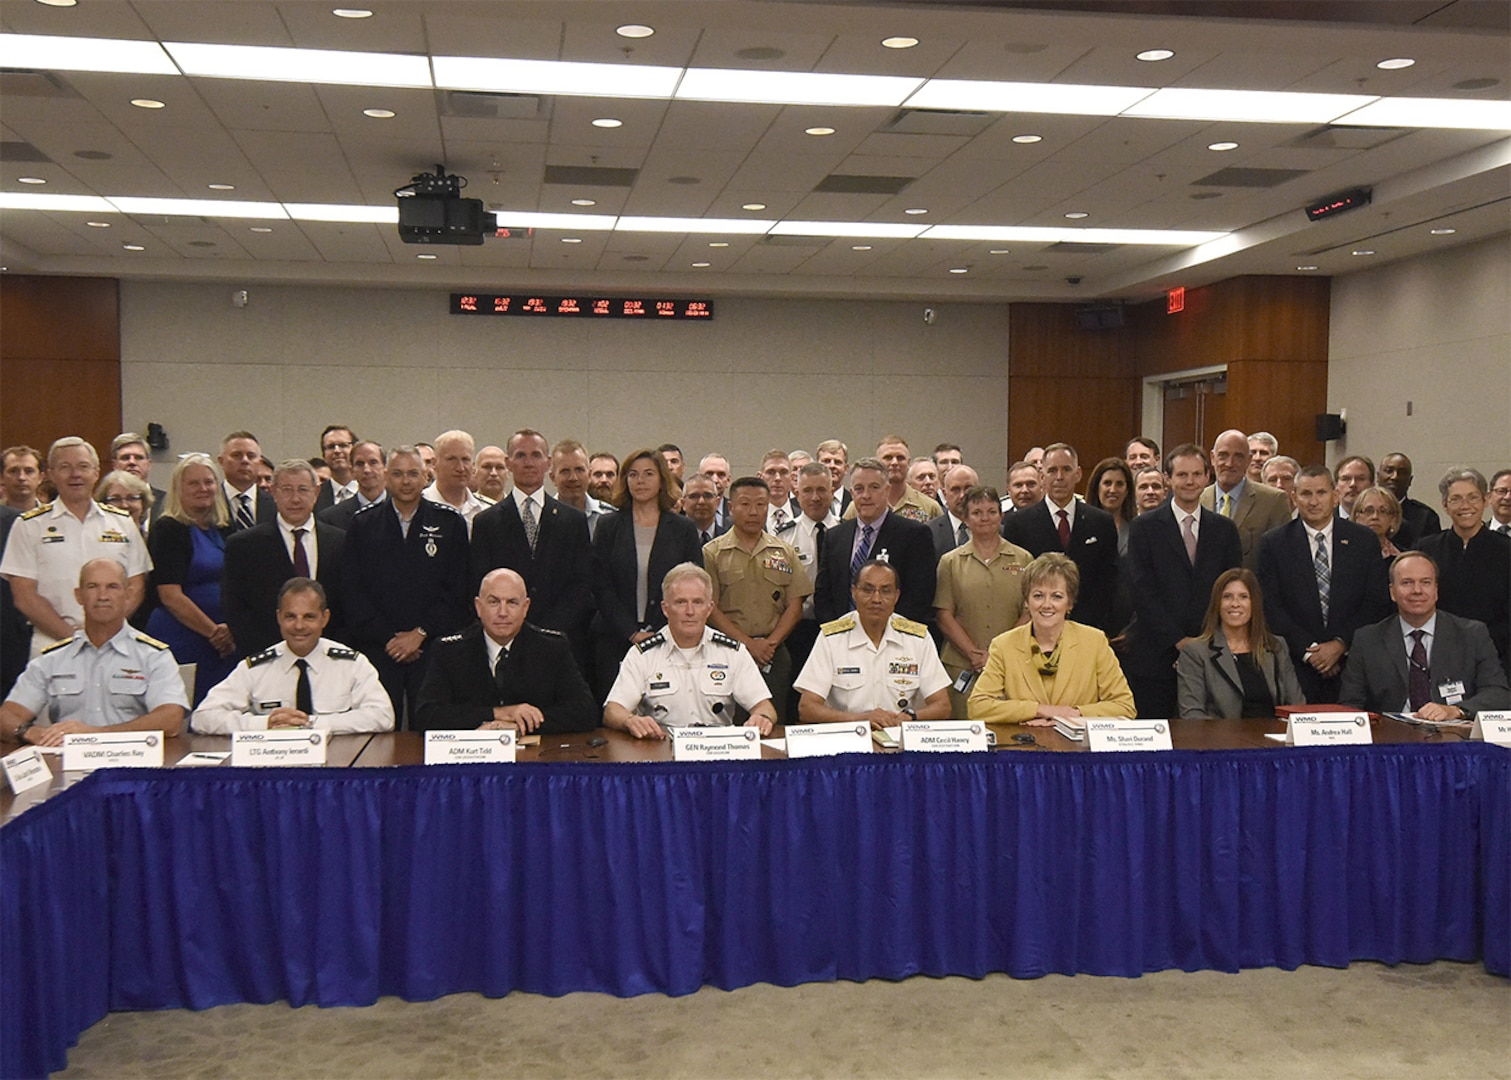 Combatant commanders, senior officials from the Department of Defense and other parts of the U.S. government, and WMD experts and senior leaders from partner nations gathered at the 15th CWMD Global Synchronization Conference to discuss the latest challenges and opportunities we have to reduce or eliminate weapons of mass destruction around the world, and provide updates on current CWMD efforts.